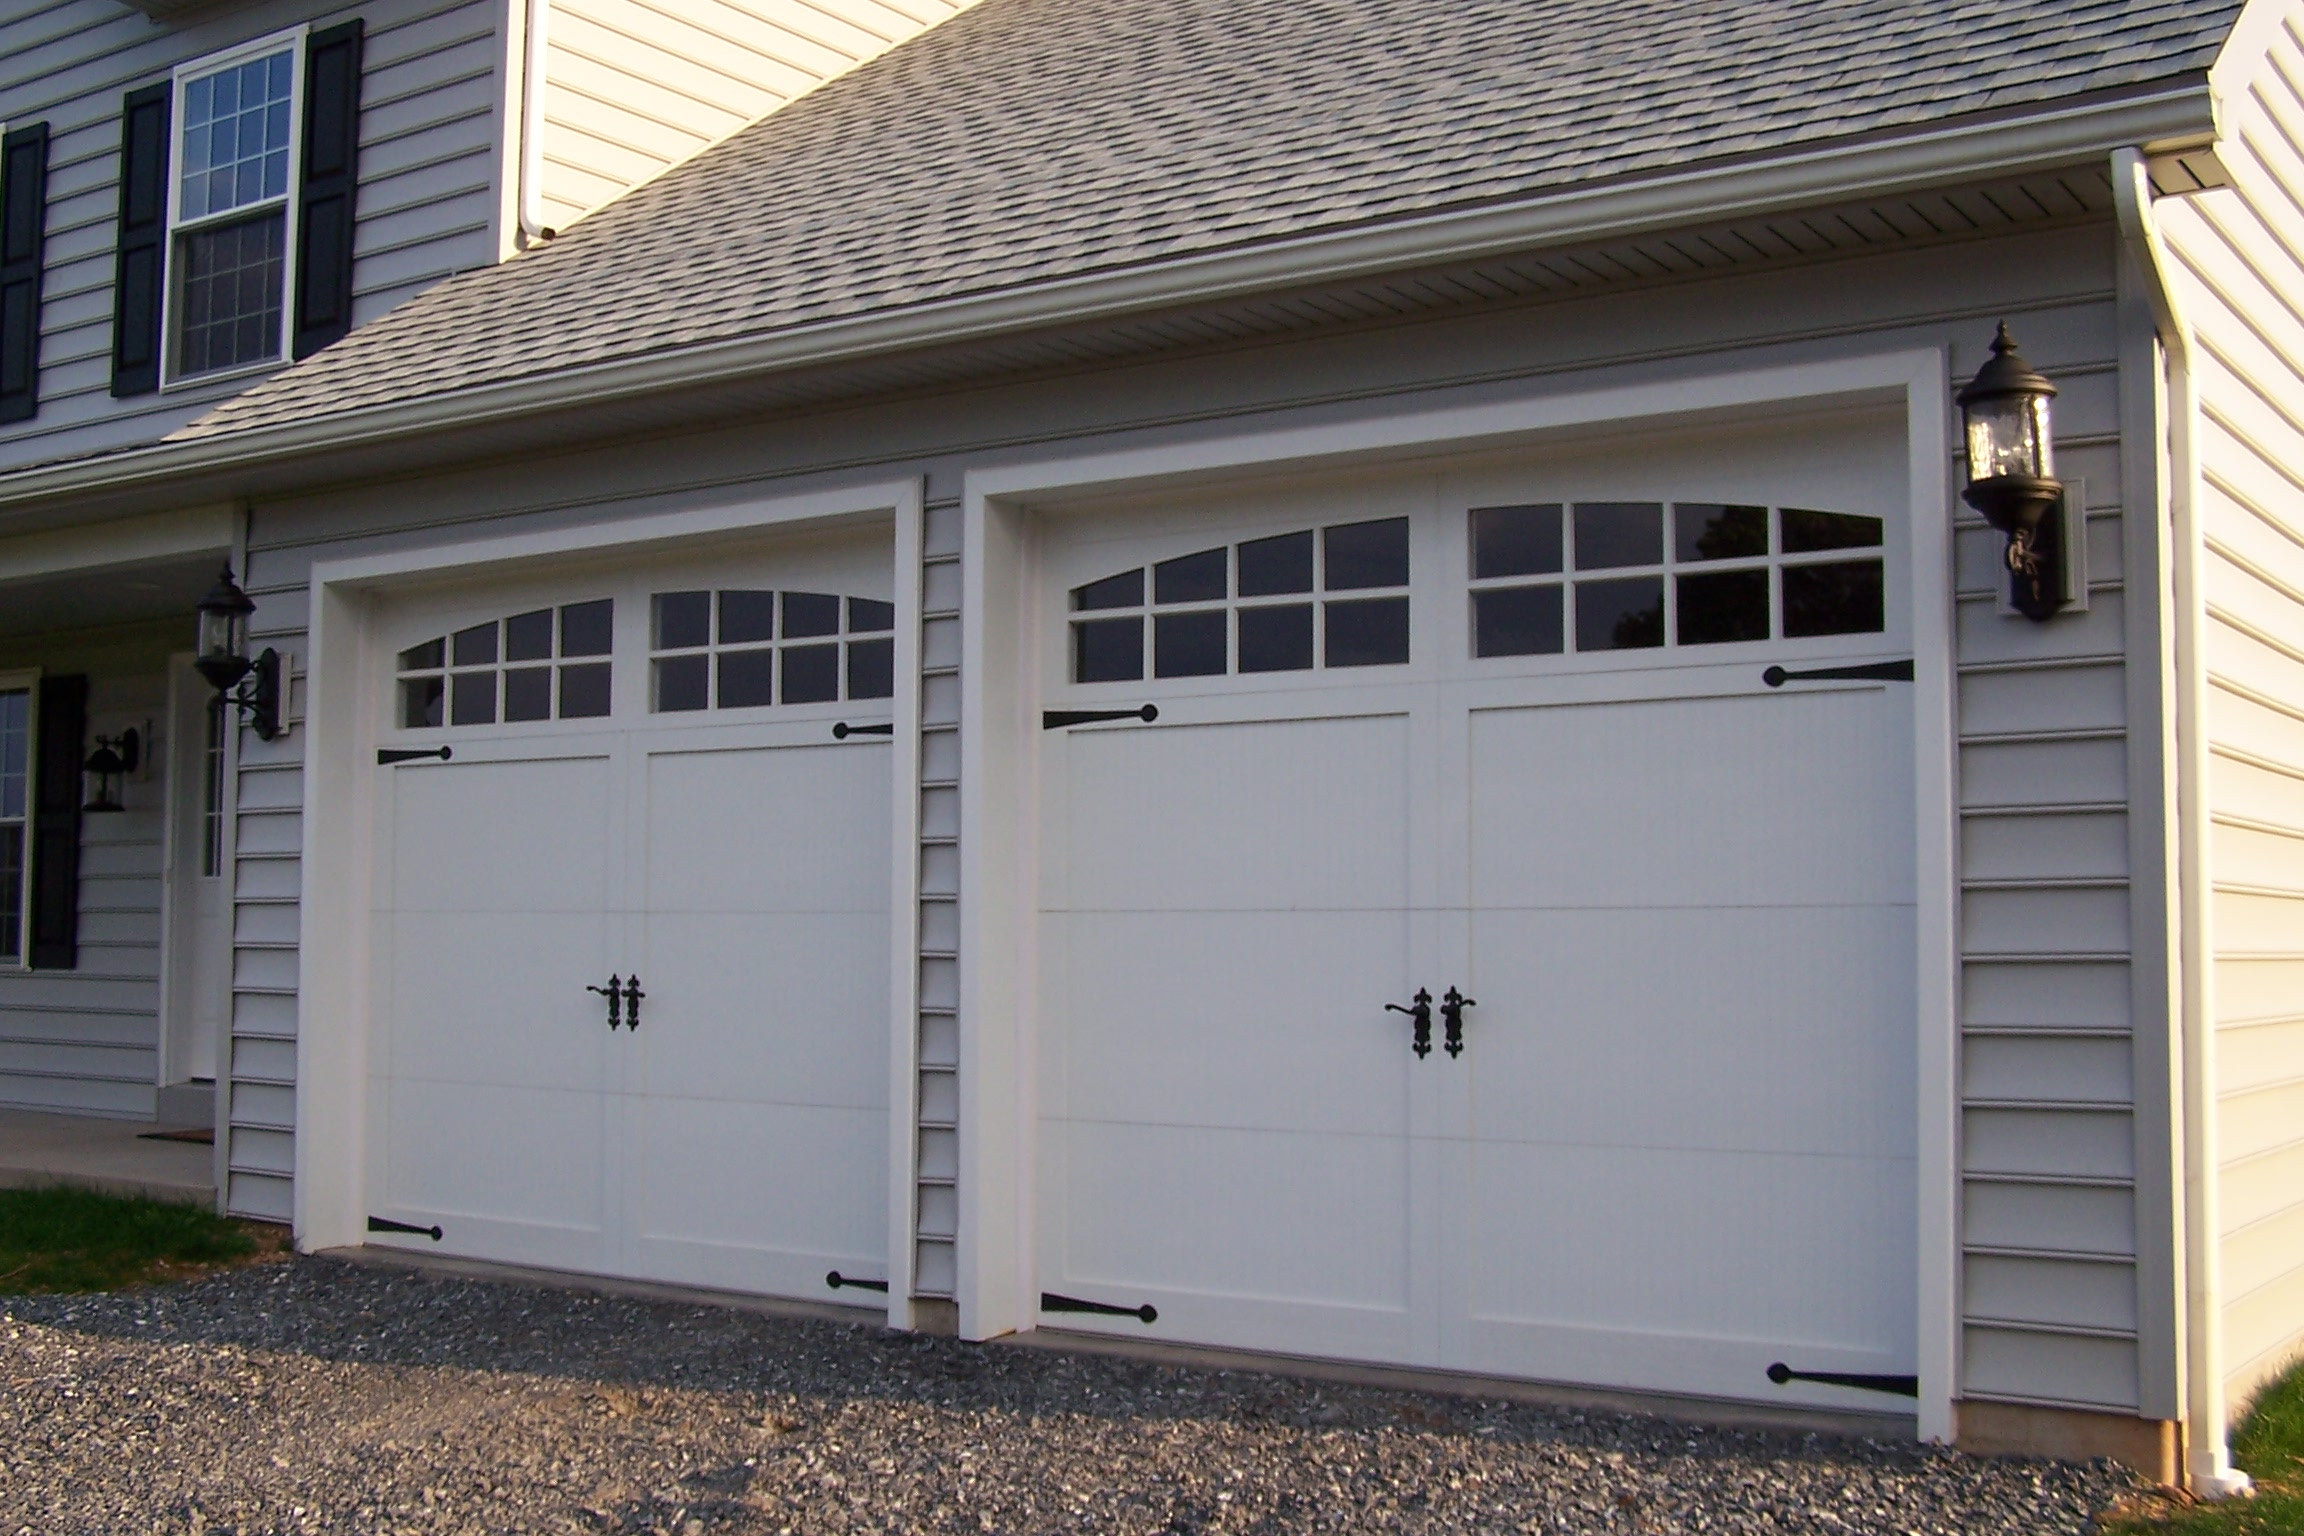 Sectional-type_overhead_garage_door.JPG